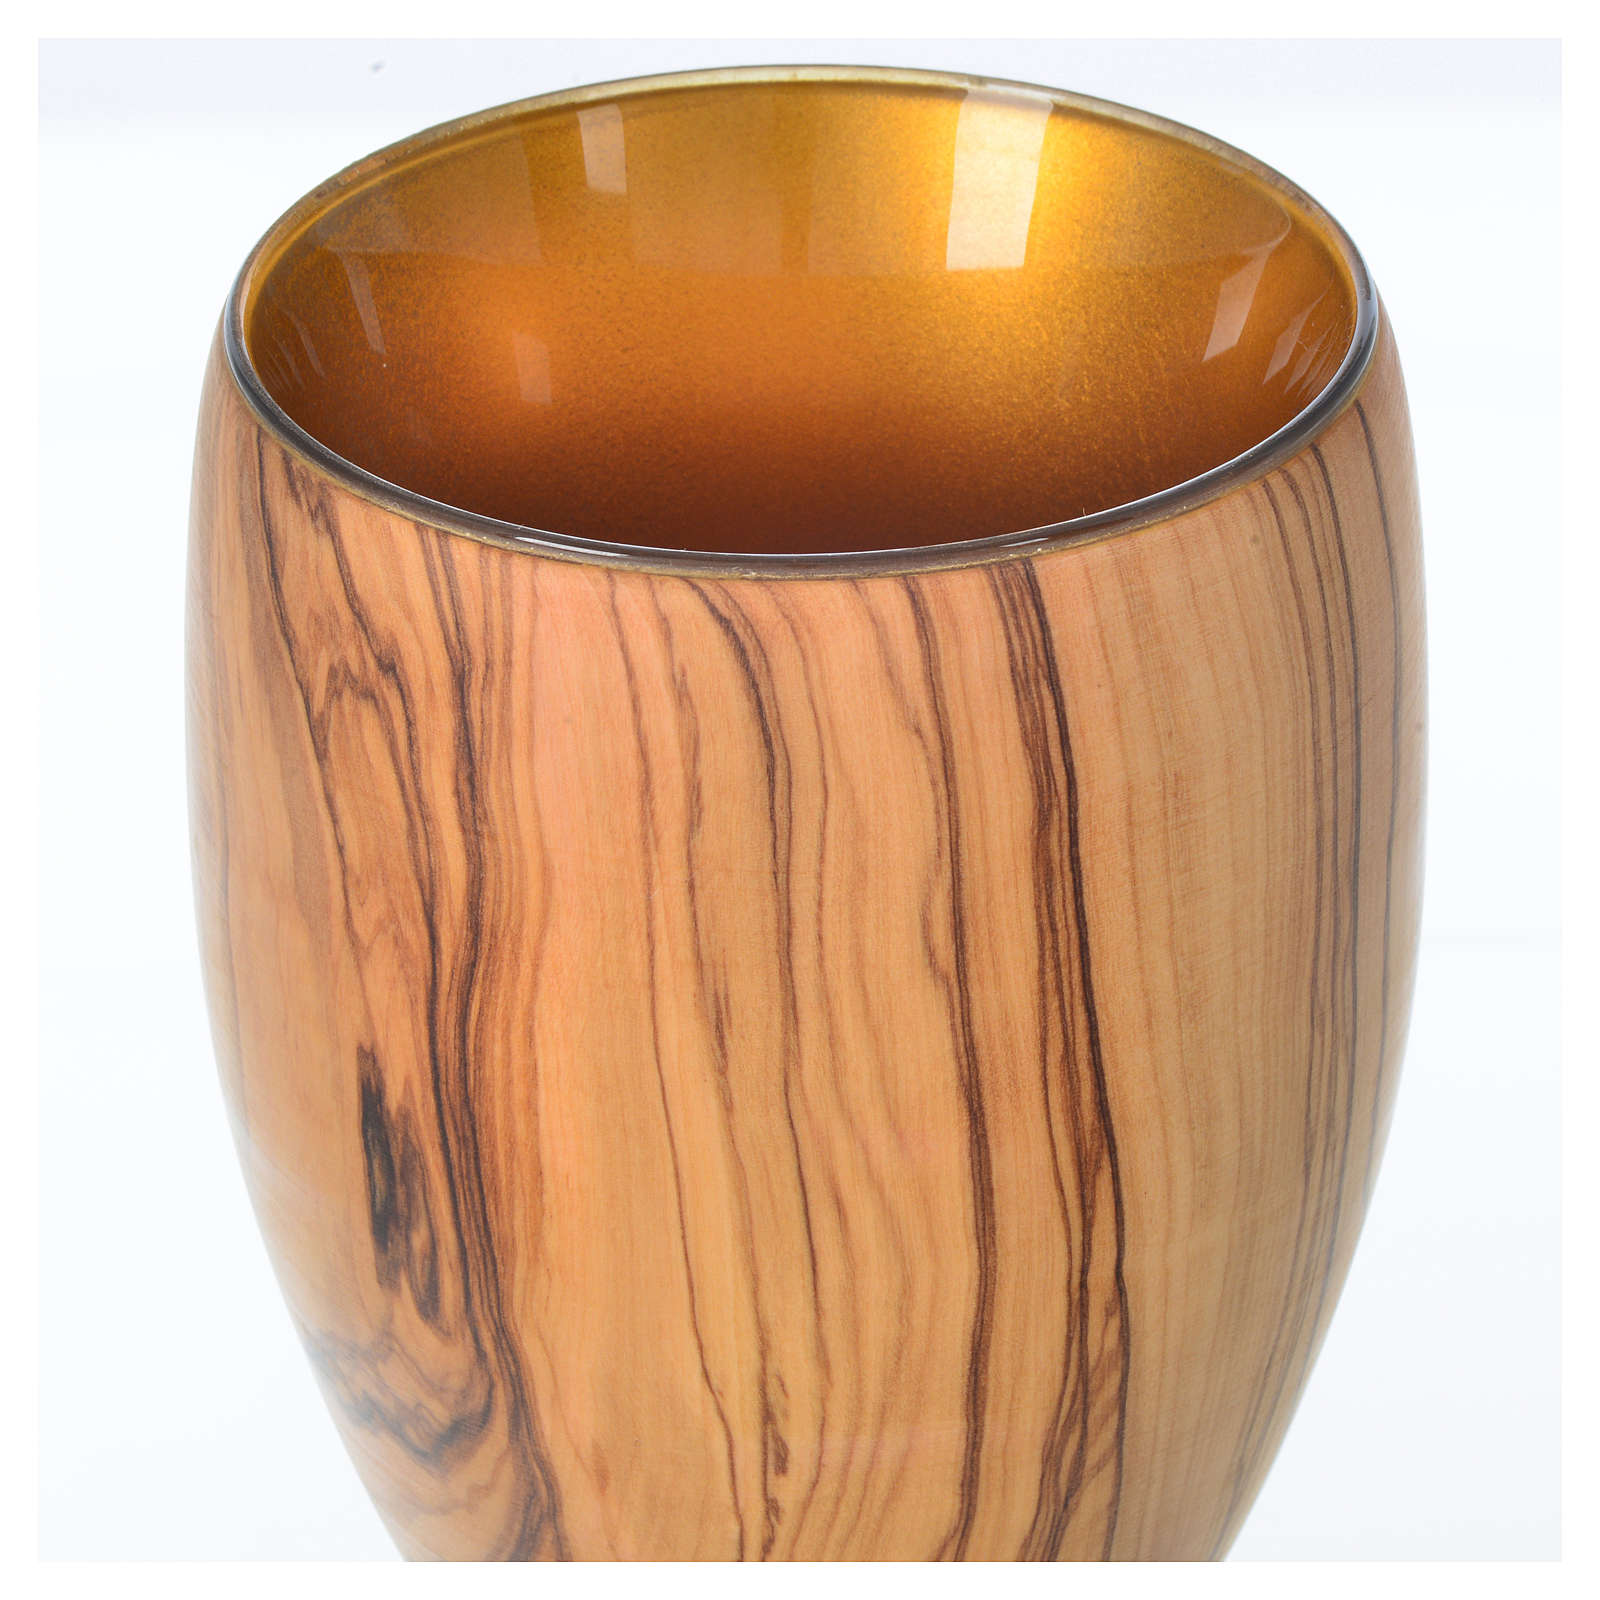 Chalice in Assisi seasoned olive wood and glass cup, H18cm 4